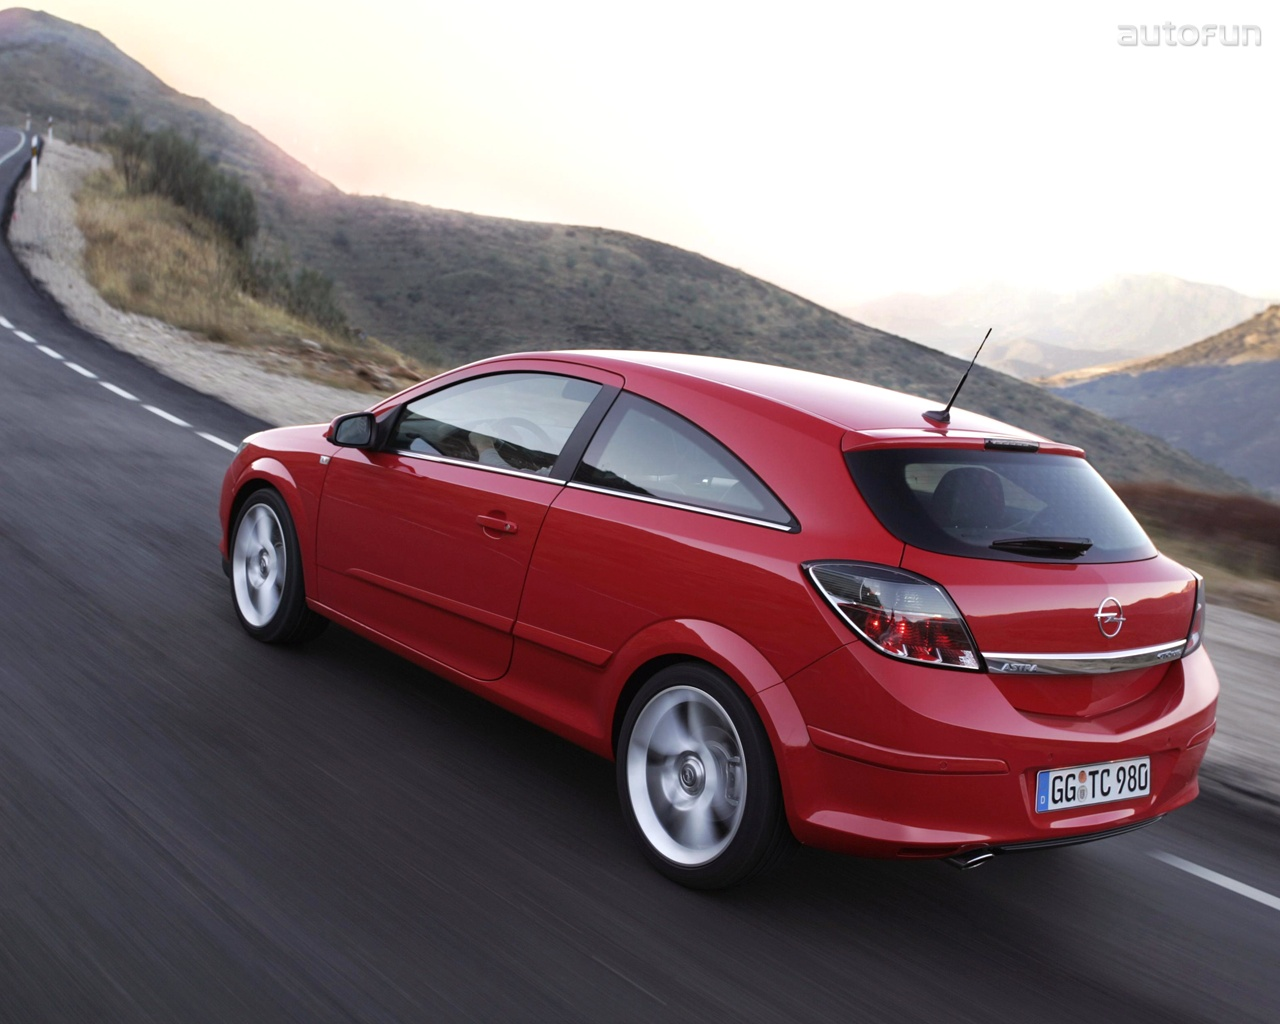 2007 Opel Astra GTC Coupe 3-door